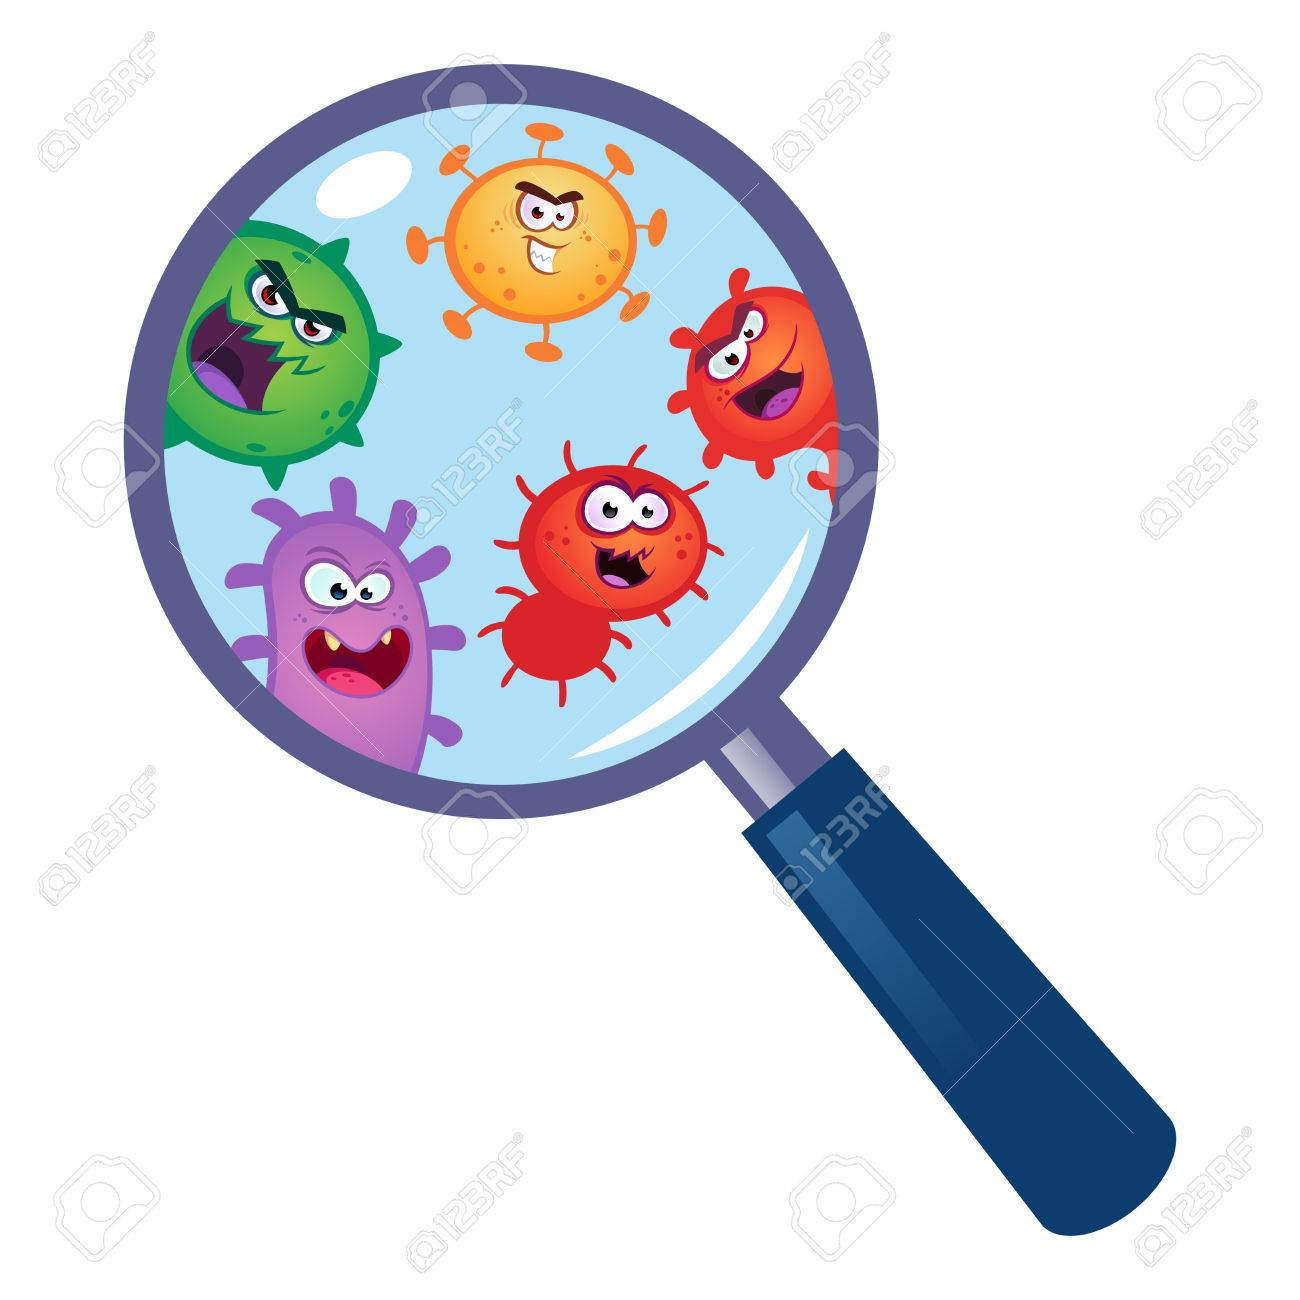 Bacteria magnifying glass clipart transparent clipart images.